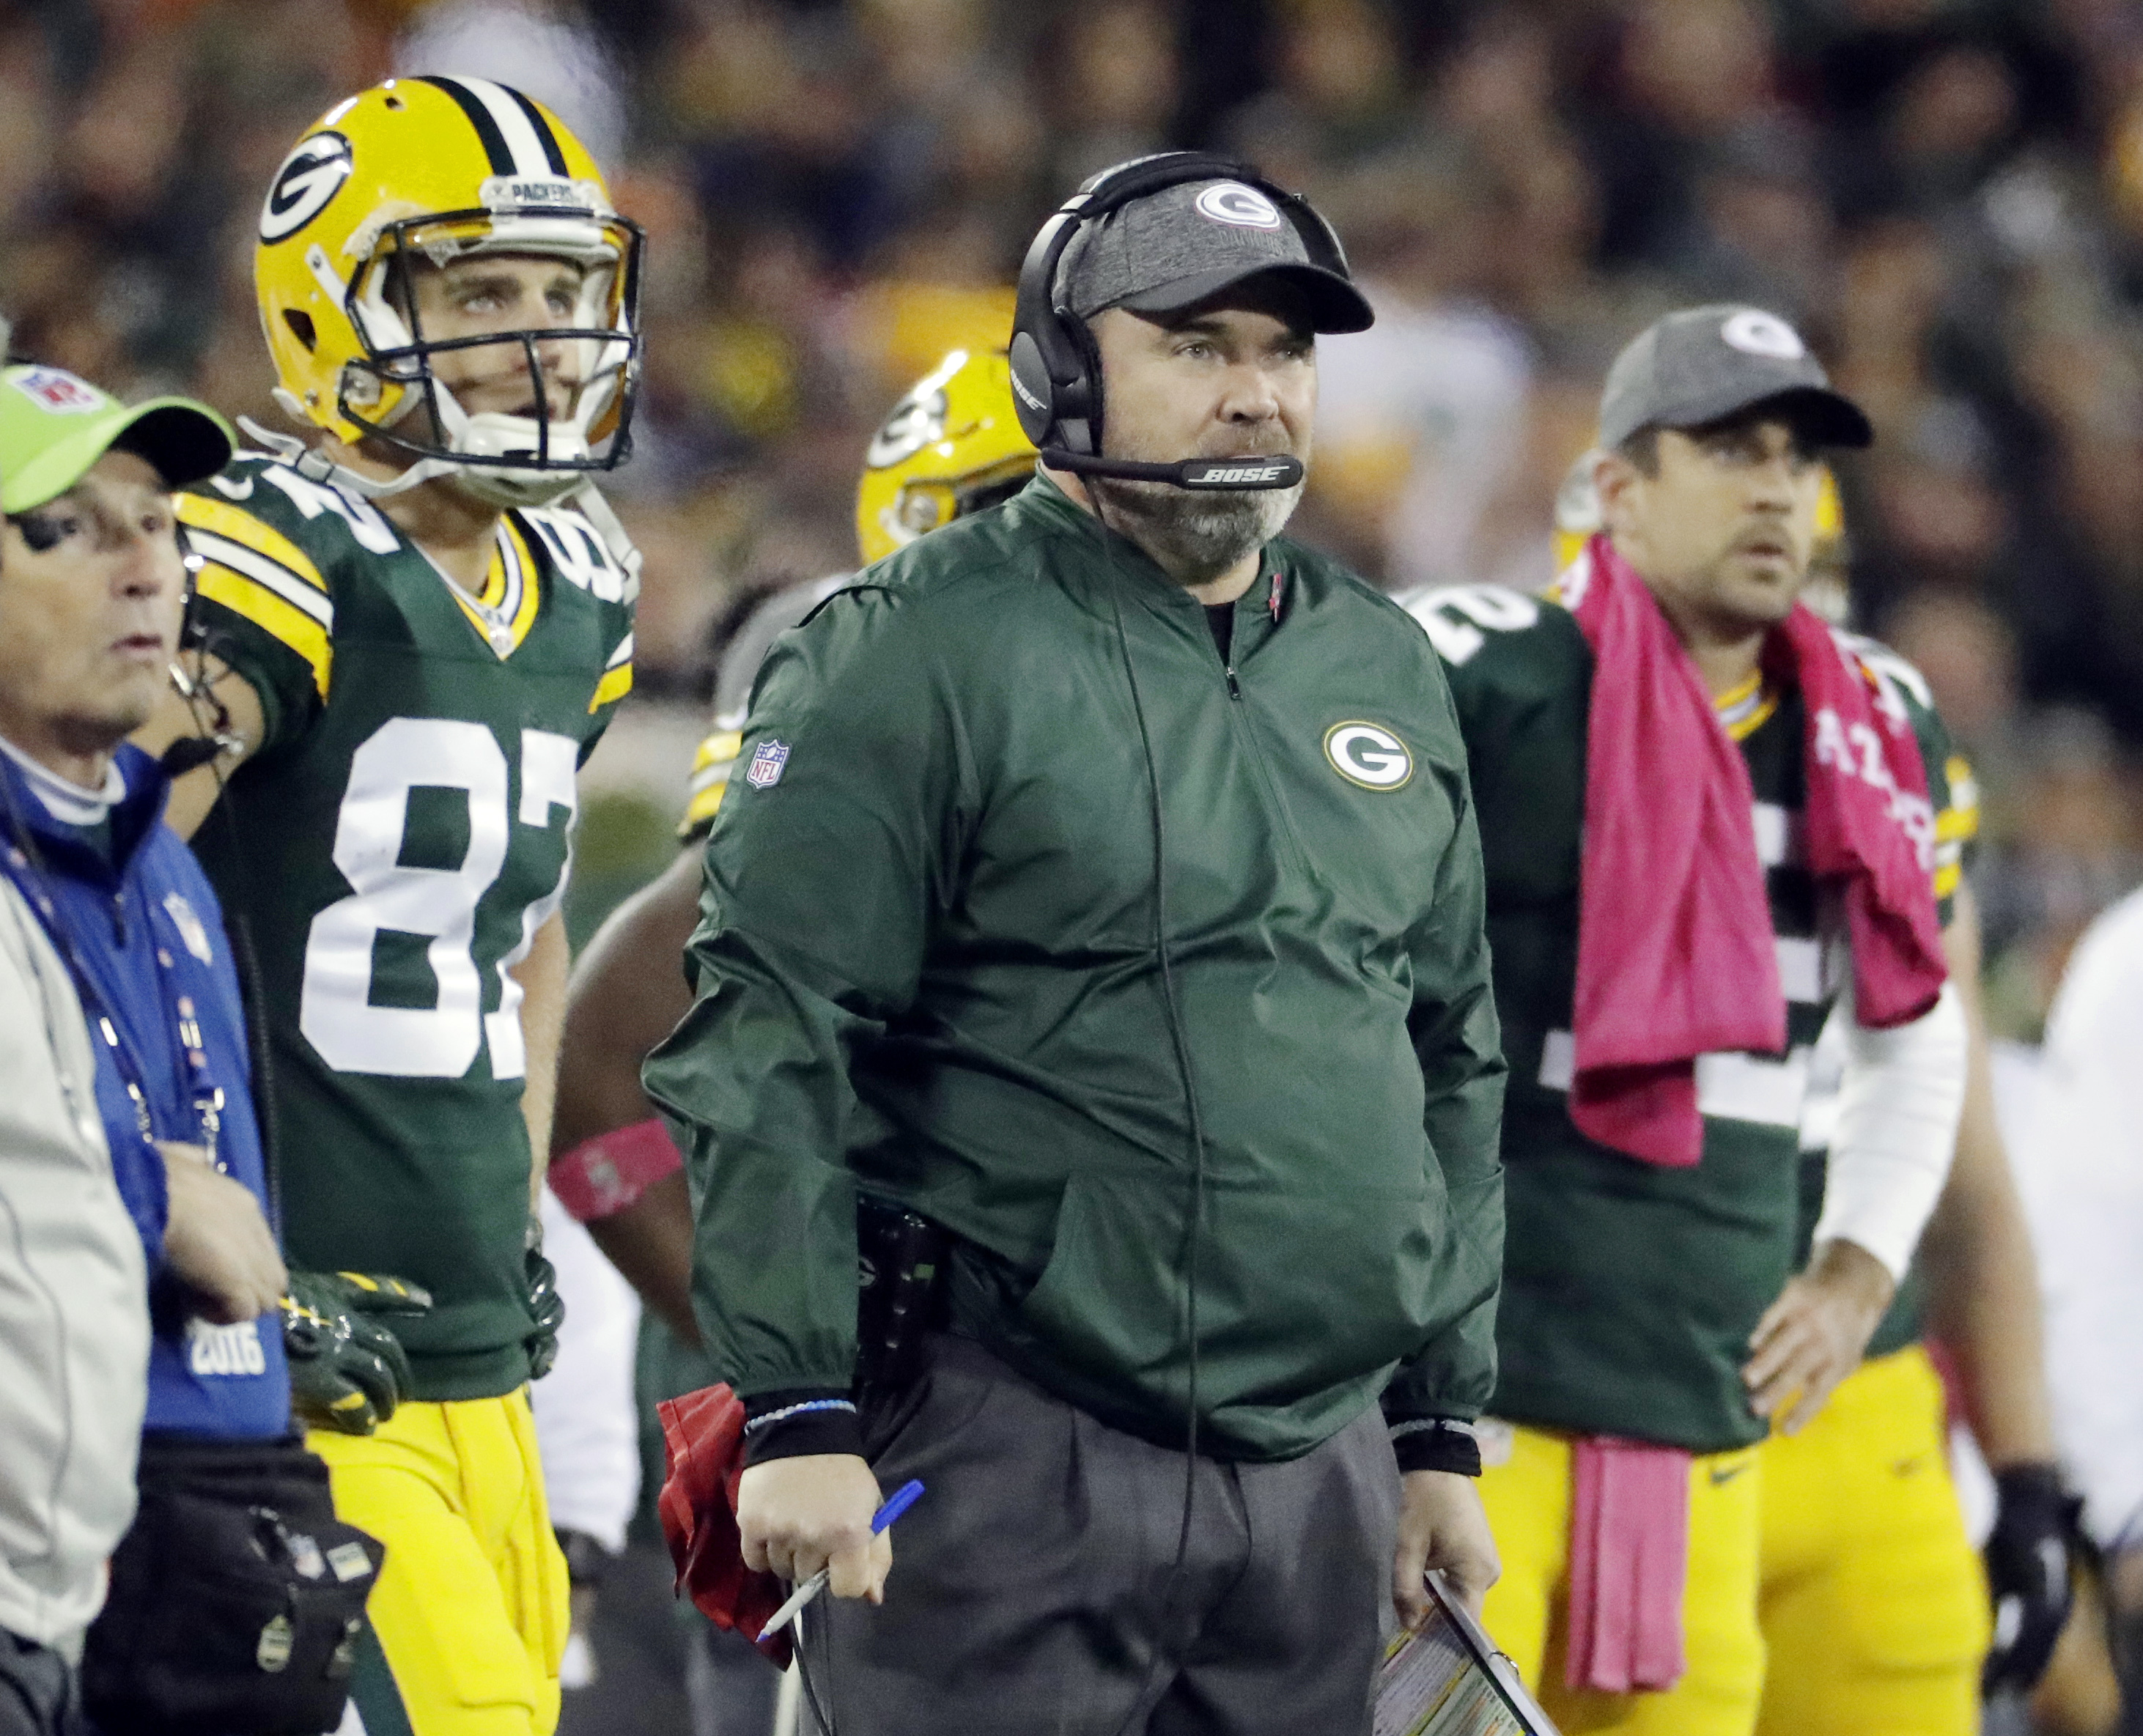 FILE - In this Oct. 9, 2016 file photo, Green Bay Packers head coach Mike McCarthy watches an NFL football game against the New York Giants in Green Bay, Wis. The NFL's oldest rivalry will be renewed on Thursday, Oct. 20, 2016, when the Chicago Bears visi